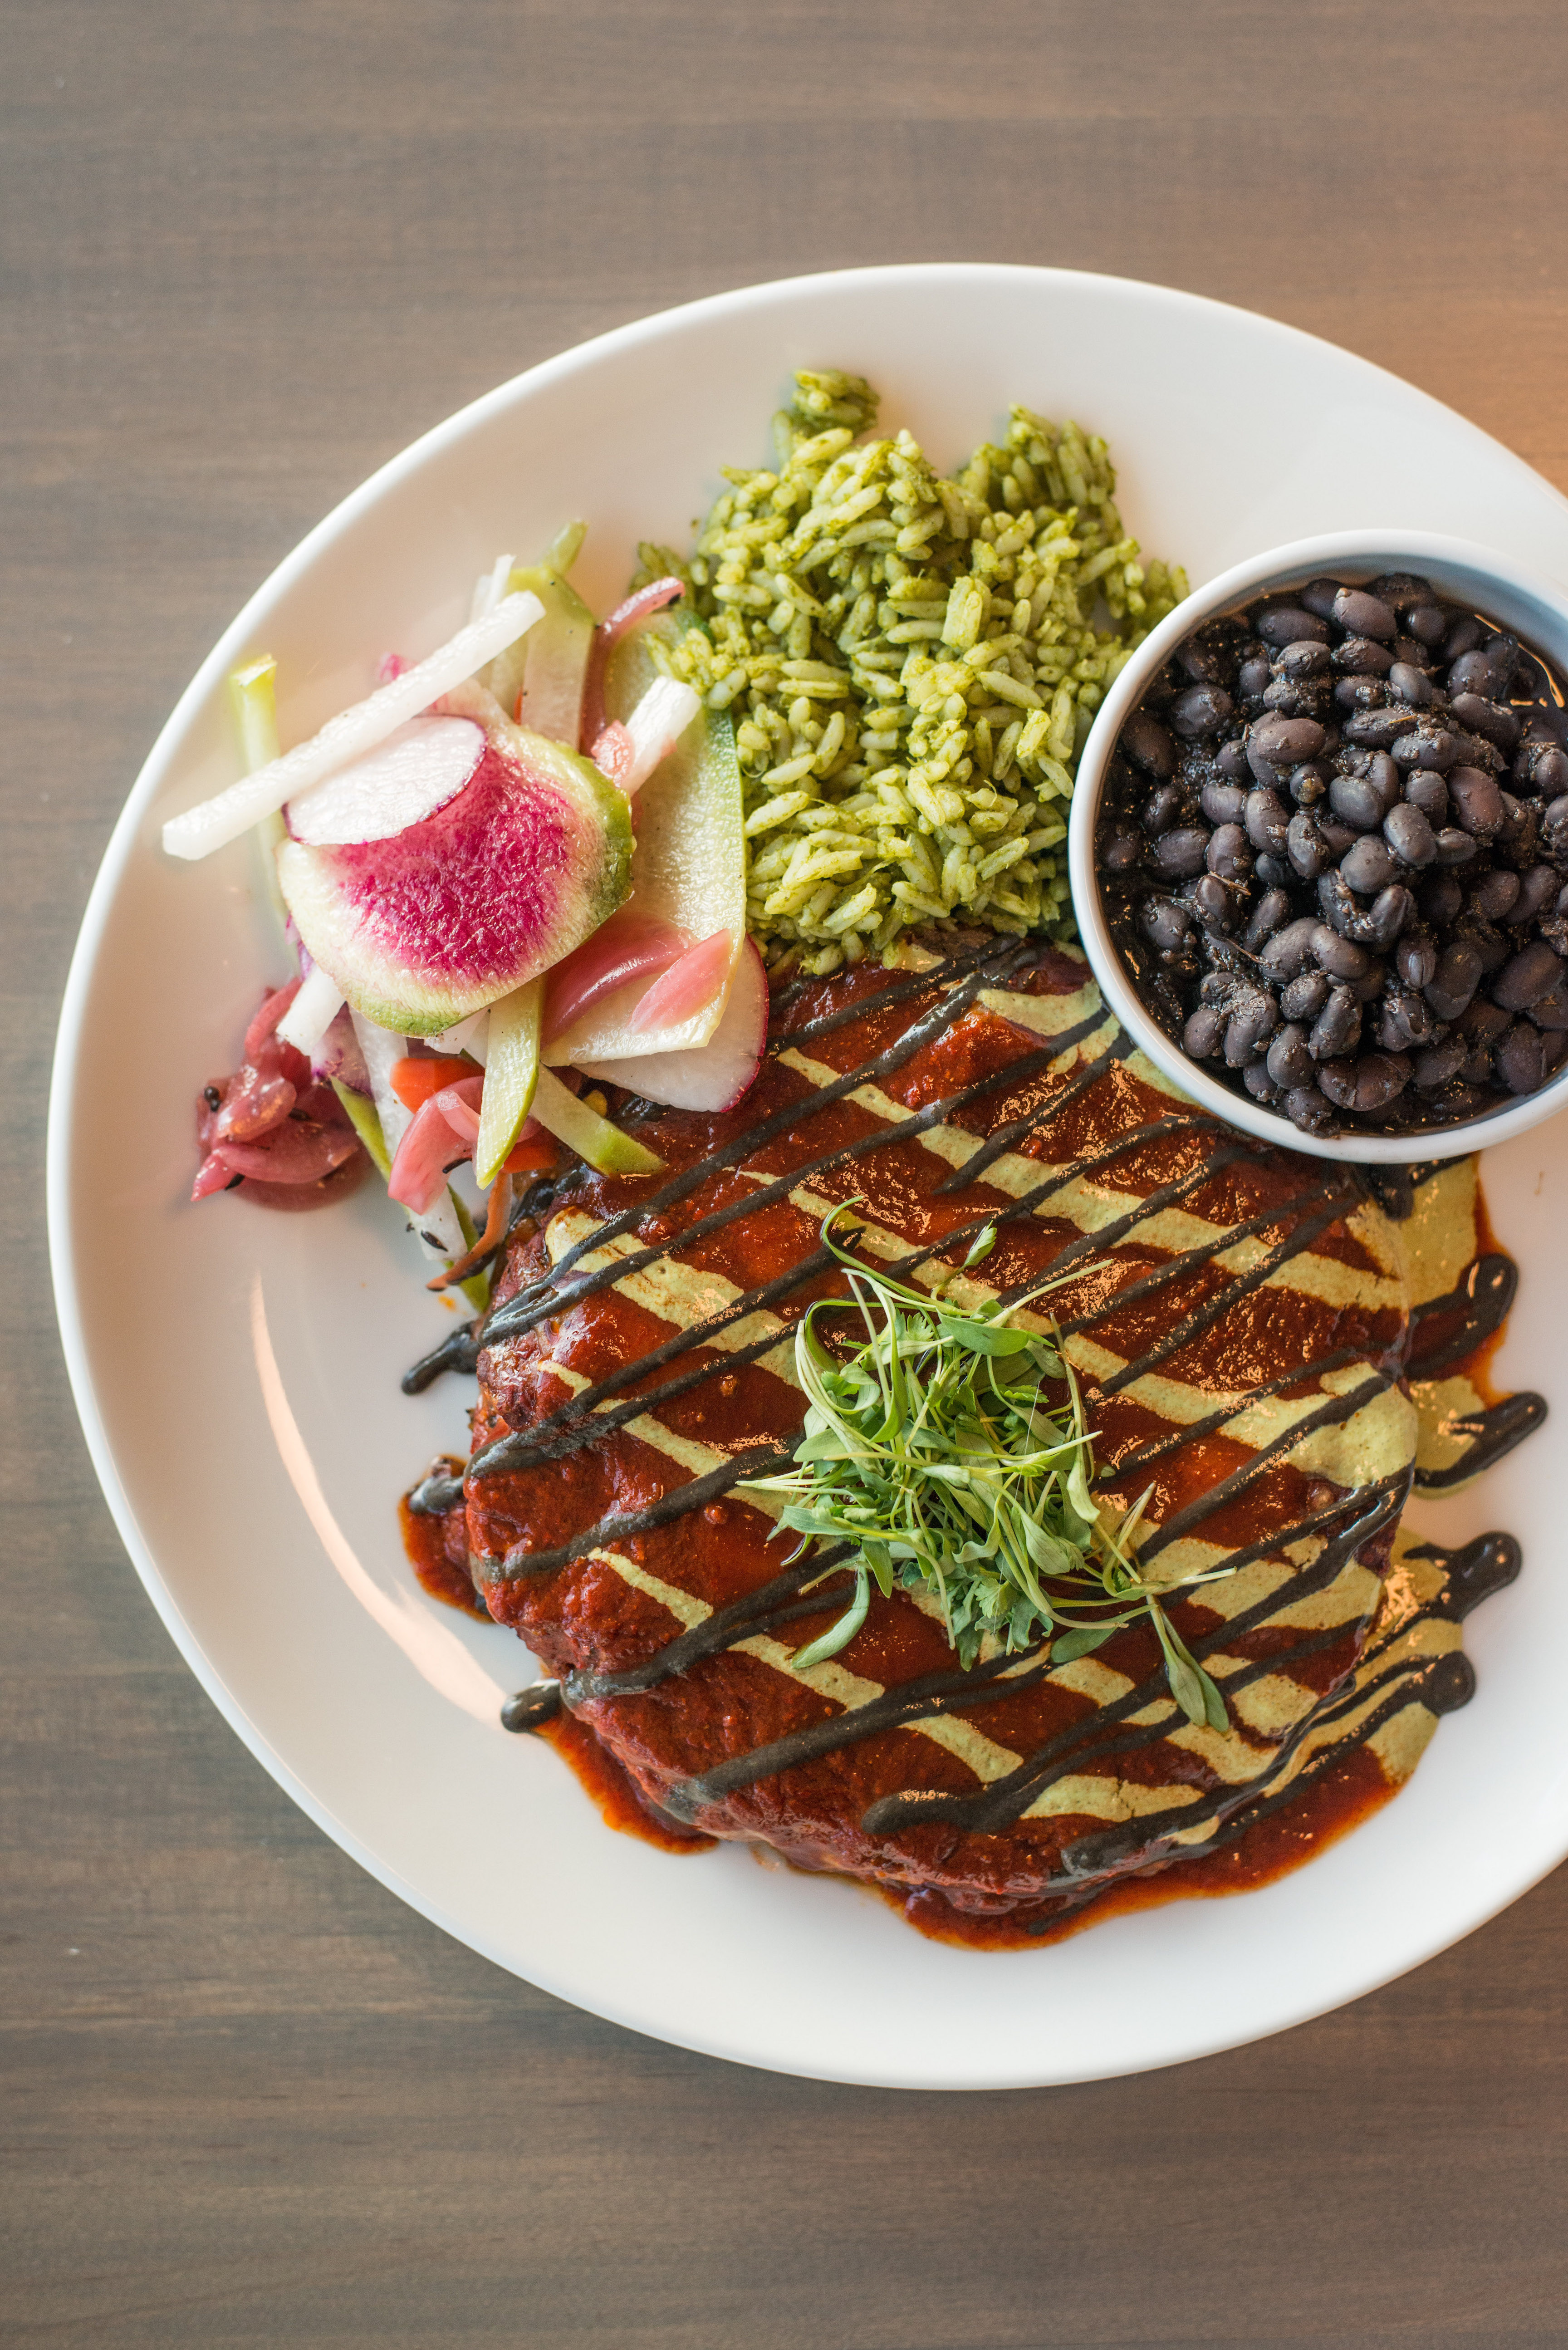 A colorful meal at Santo in Boulder, Colorado as part of the Dirt Road Travels city guide.